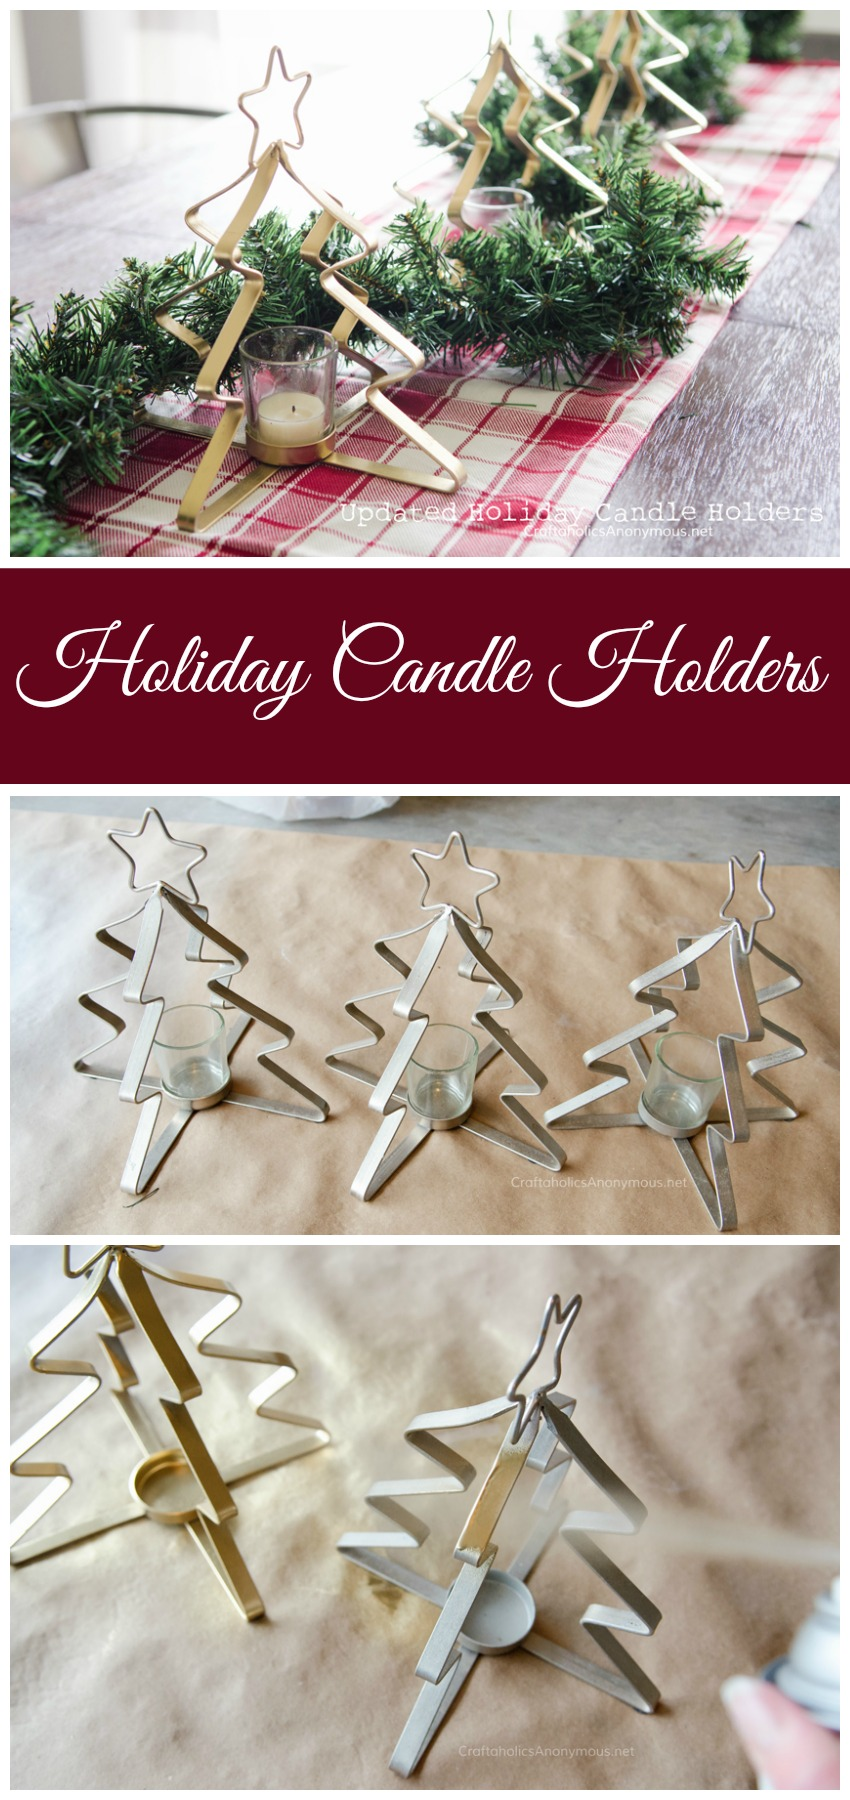 Update silver holiday candle holders with a coat of metallic gold spray paint